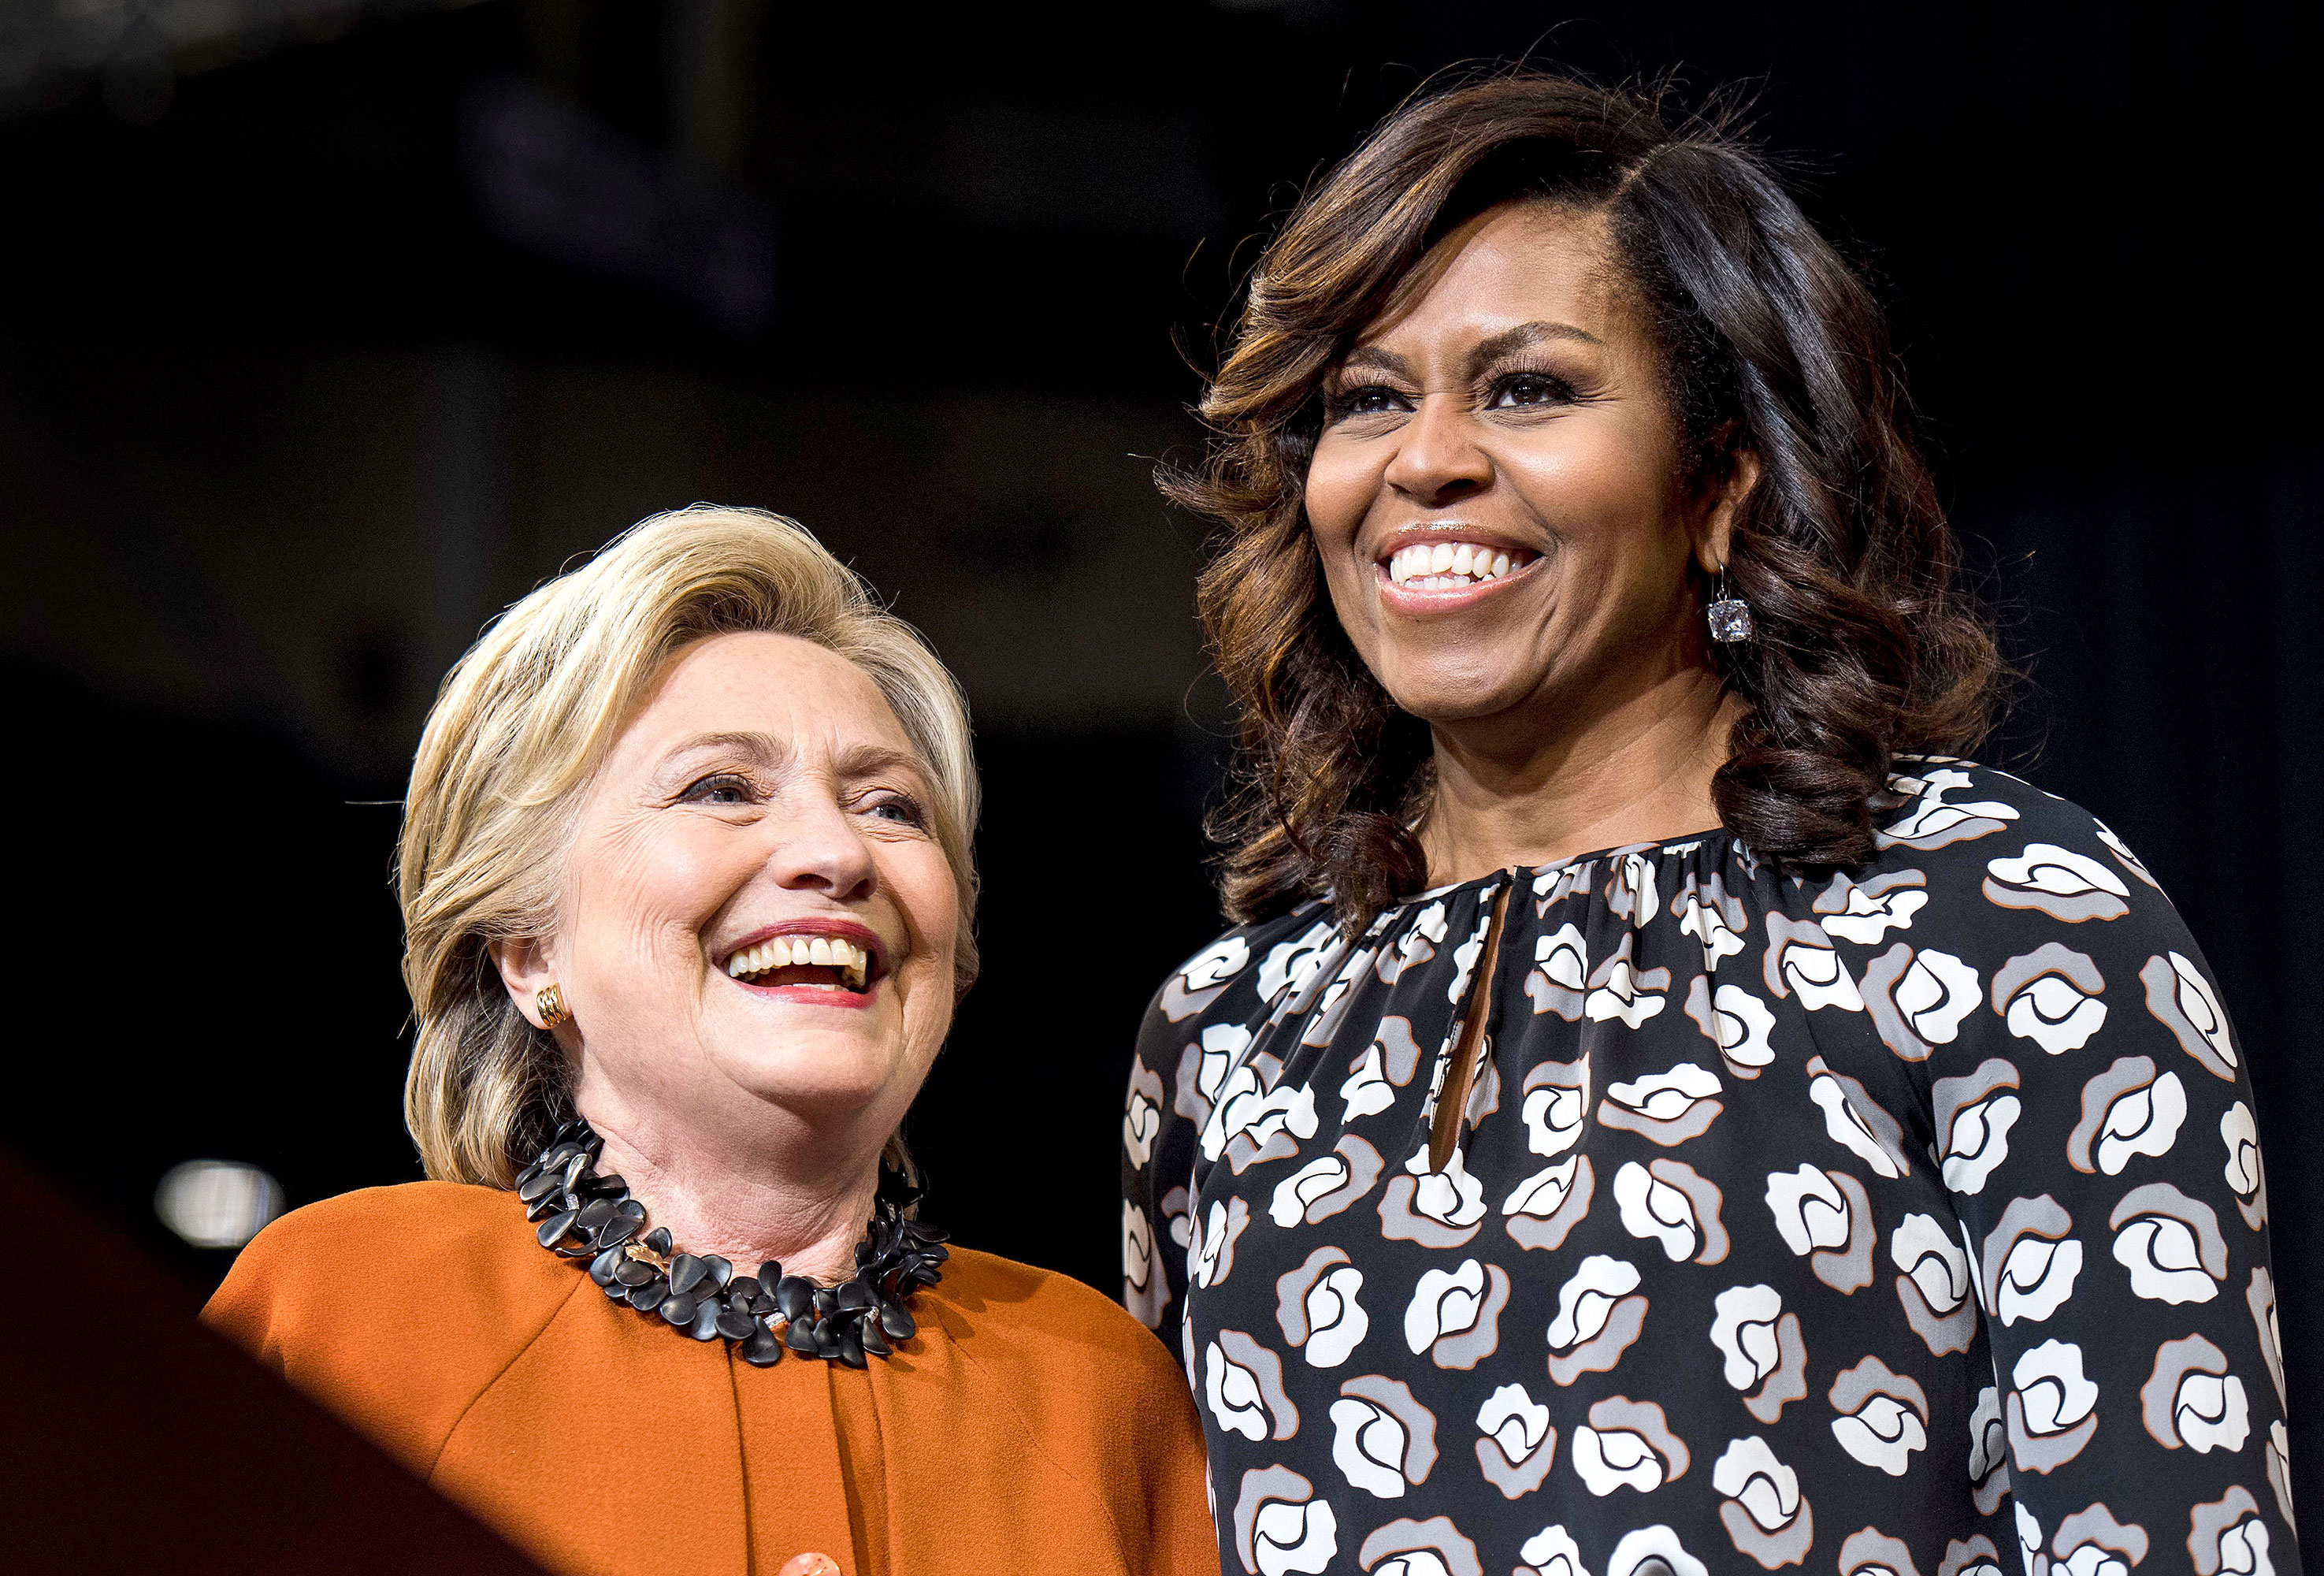 Hillary Clinton campaigns in North Carolina with First Lady Michelle Obama in Winston-Salem, North Carolina Thursday October 27, 2016.